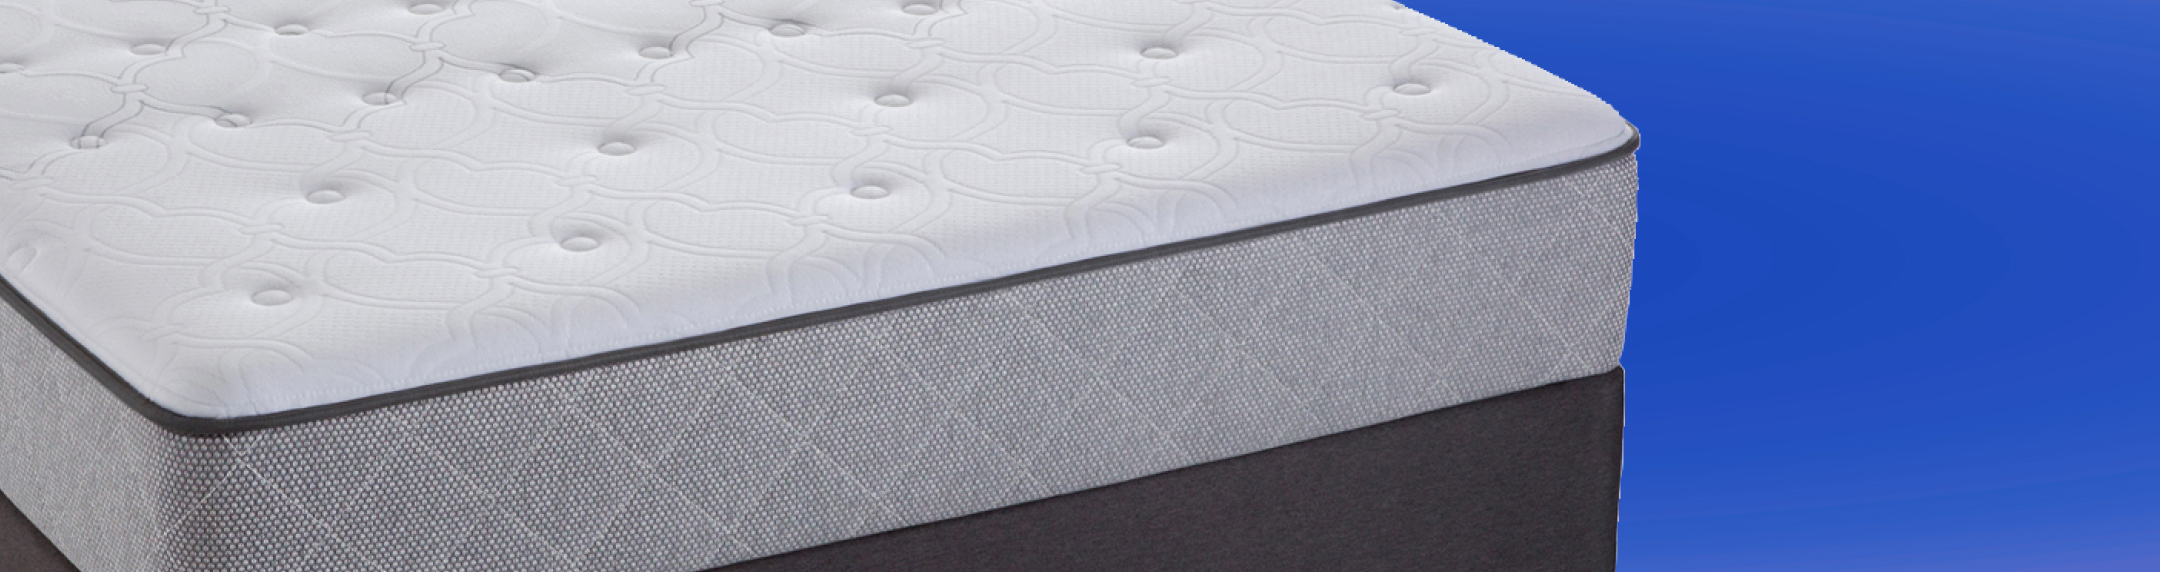 Metro Mattress Upstate New York S Largest Mattress